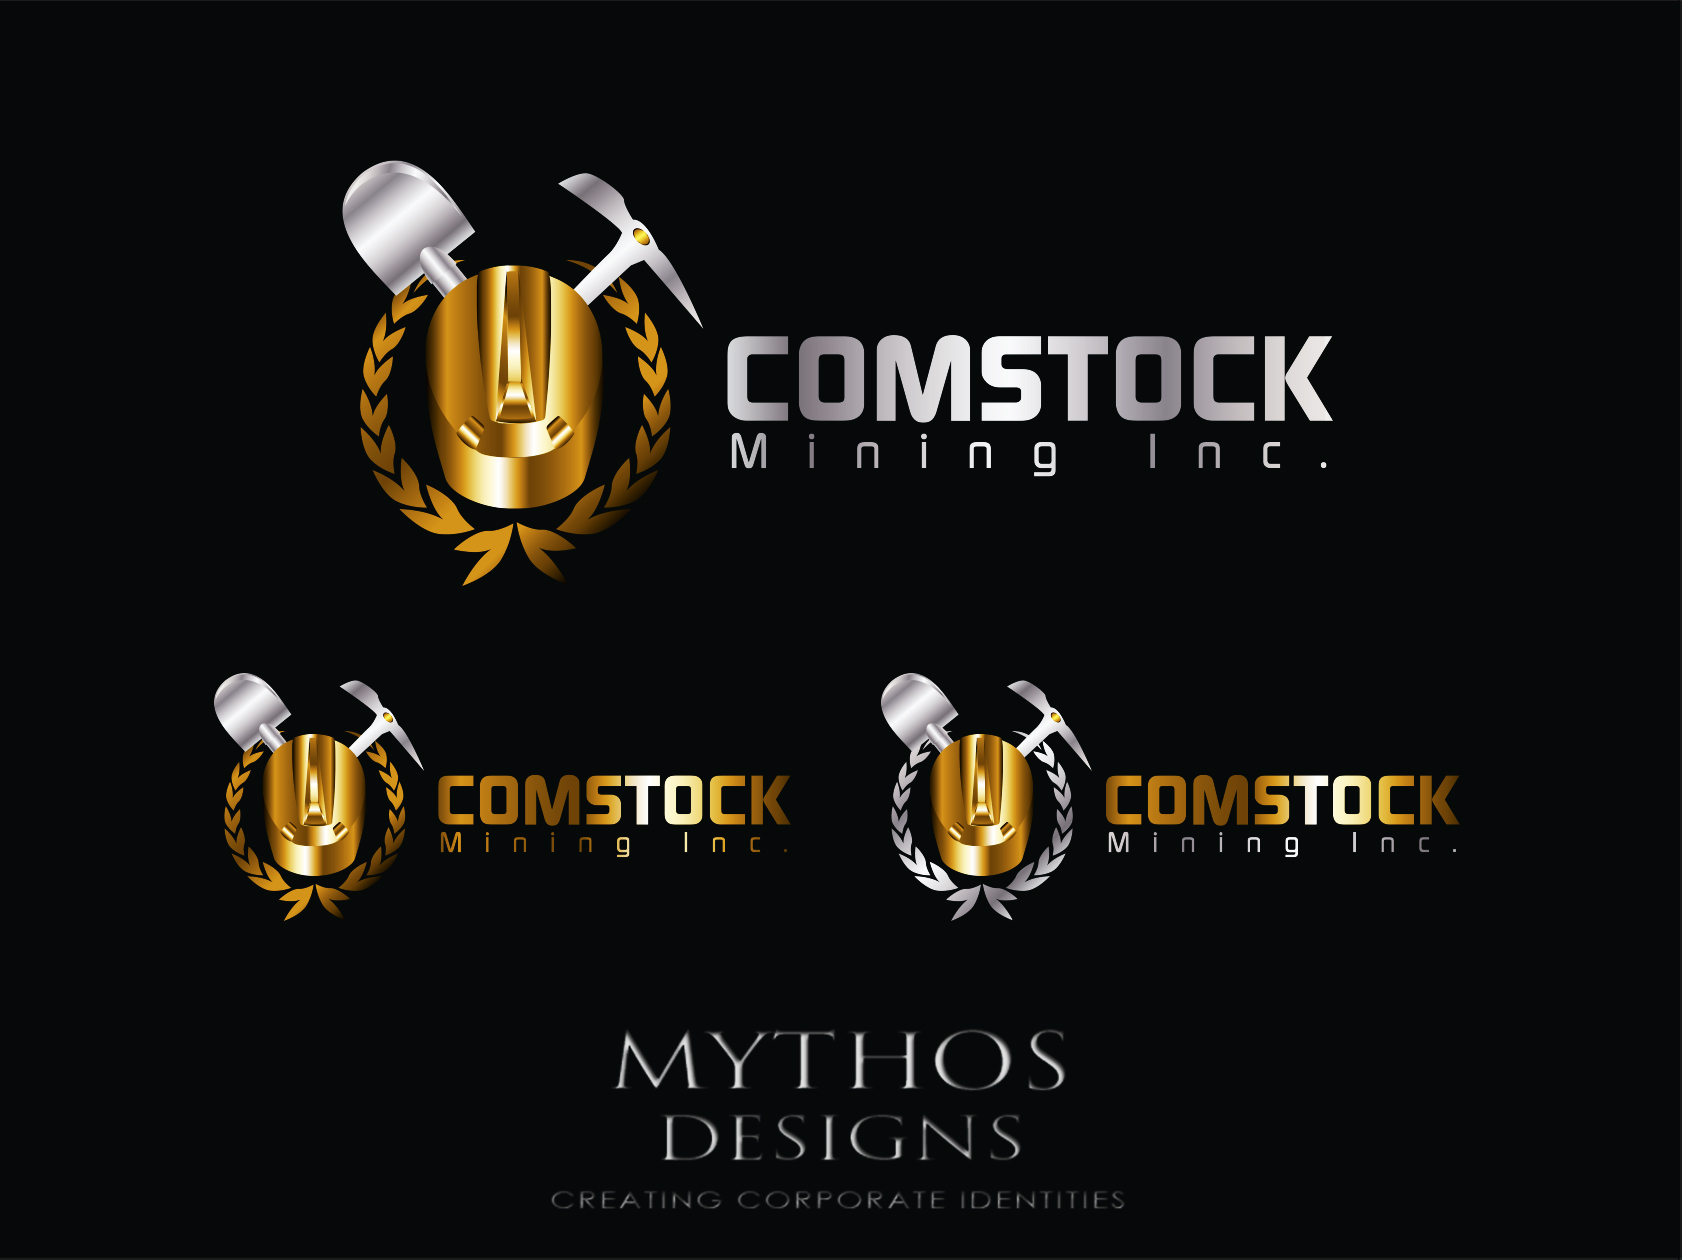 Logo Design by Mythos Designs - Entry No. 161 in the Logo Design Contest Captivating Logo Design for Comstock Mining, Inc..